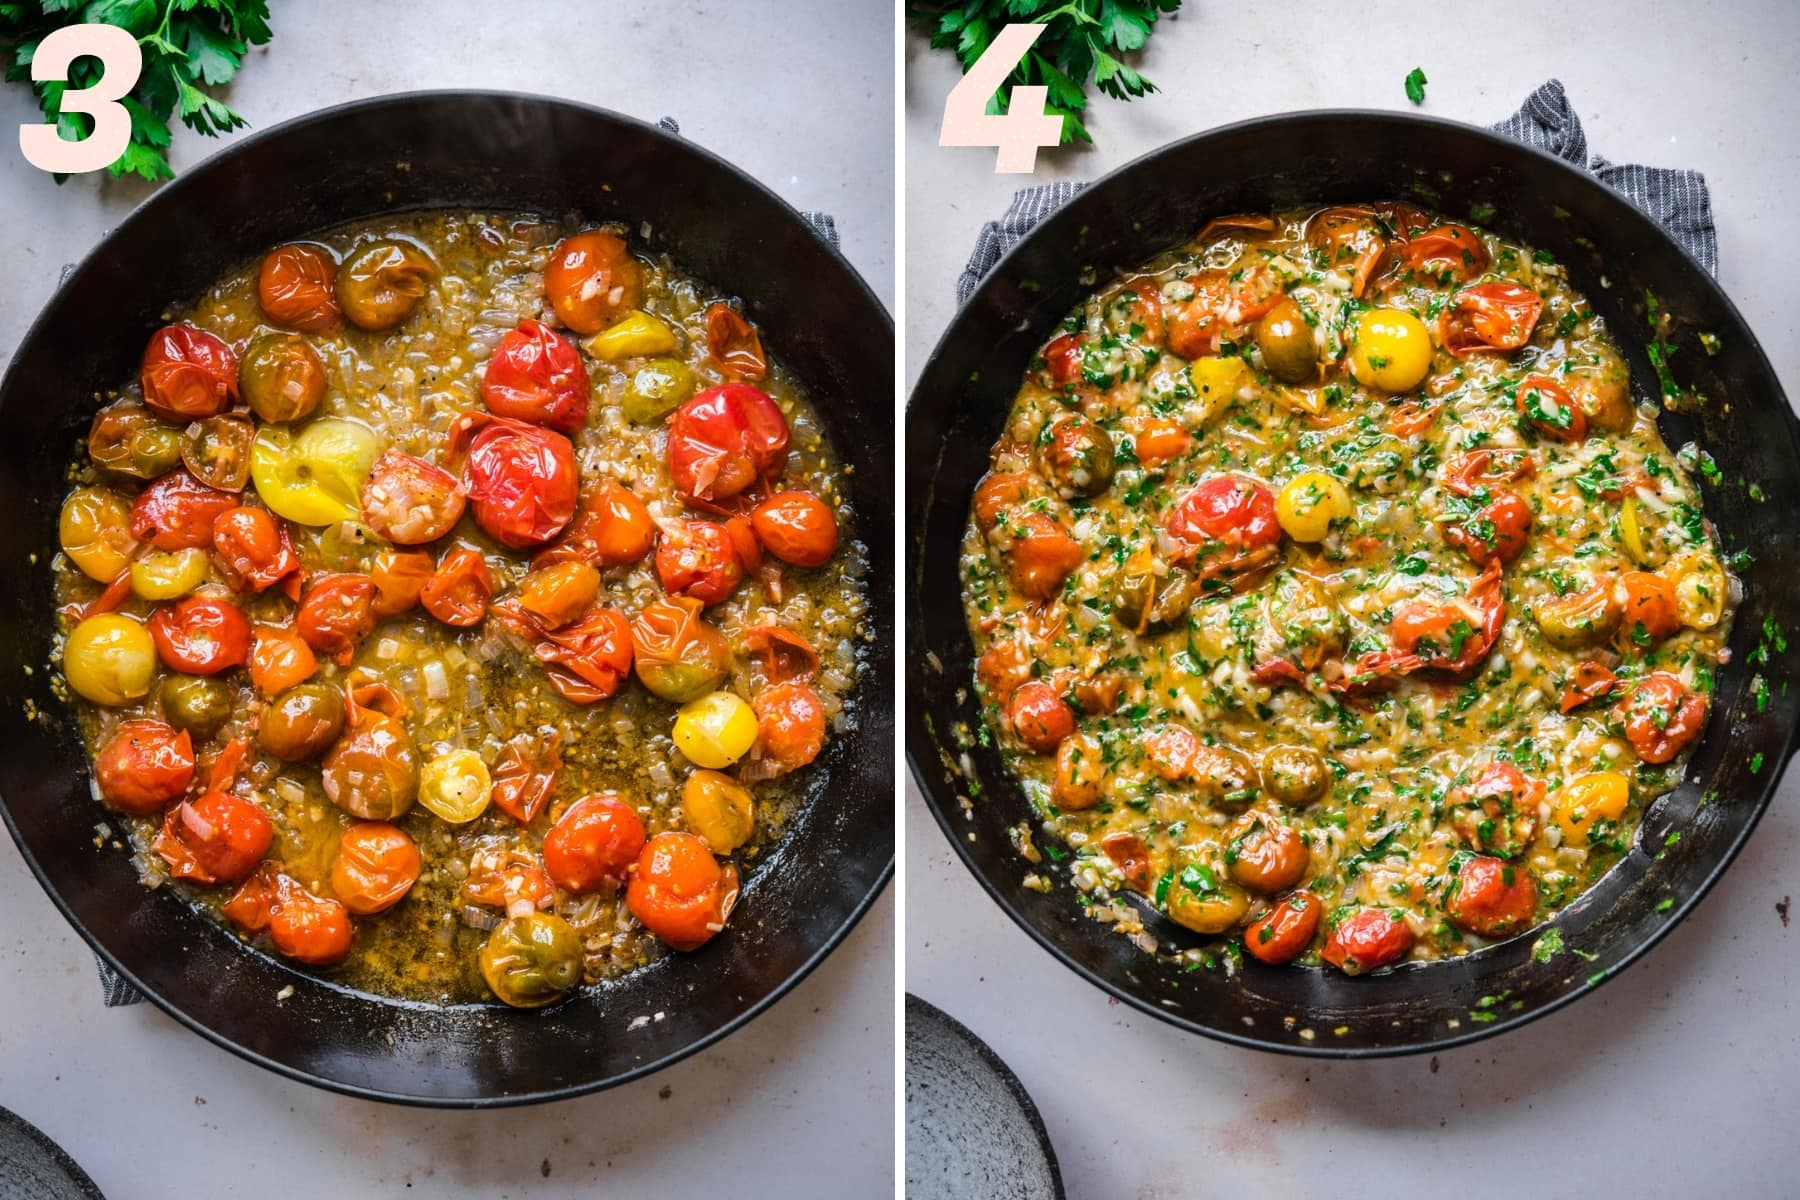 before and after adding cheese and herbs to burst cherry tomato pasta sauce.